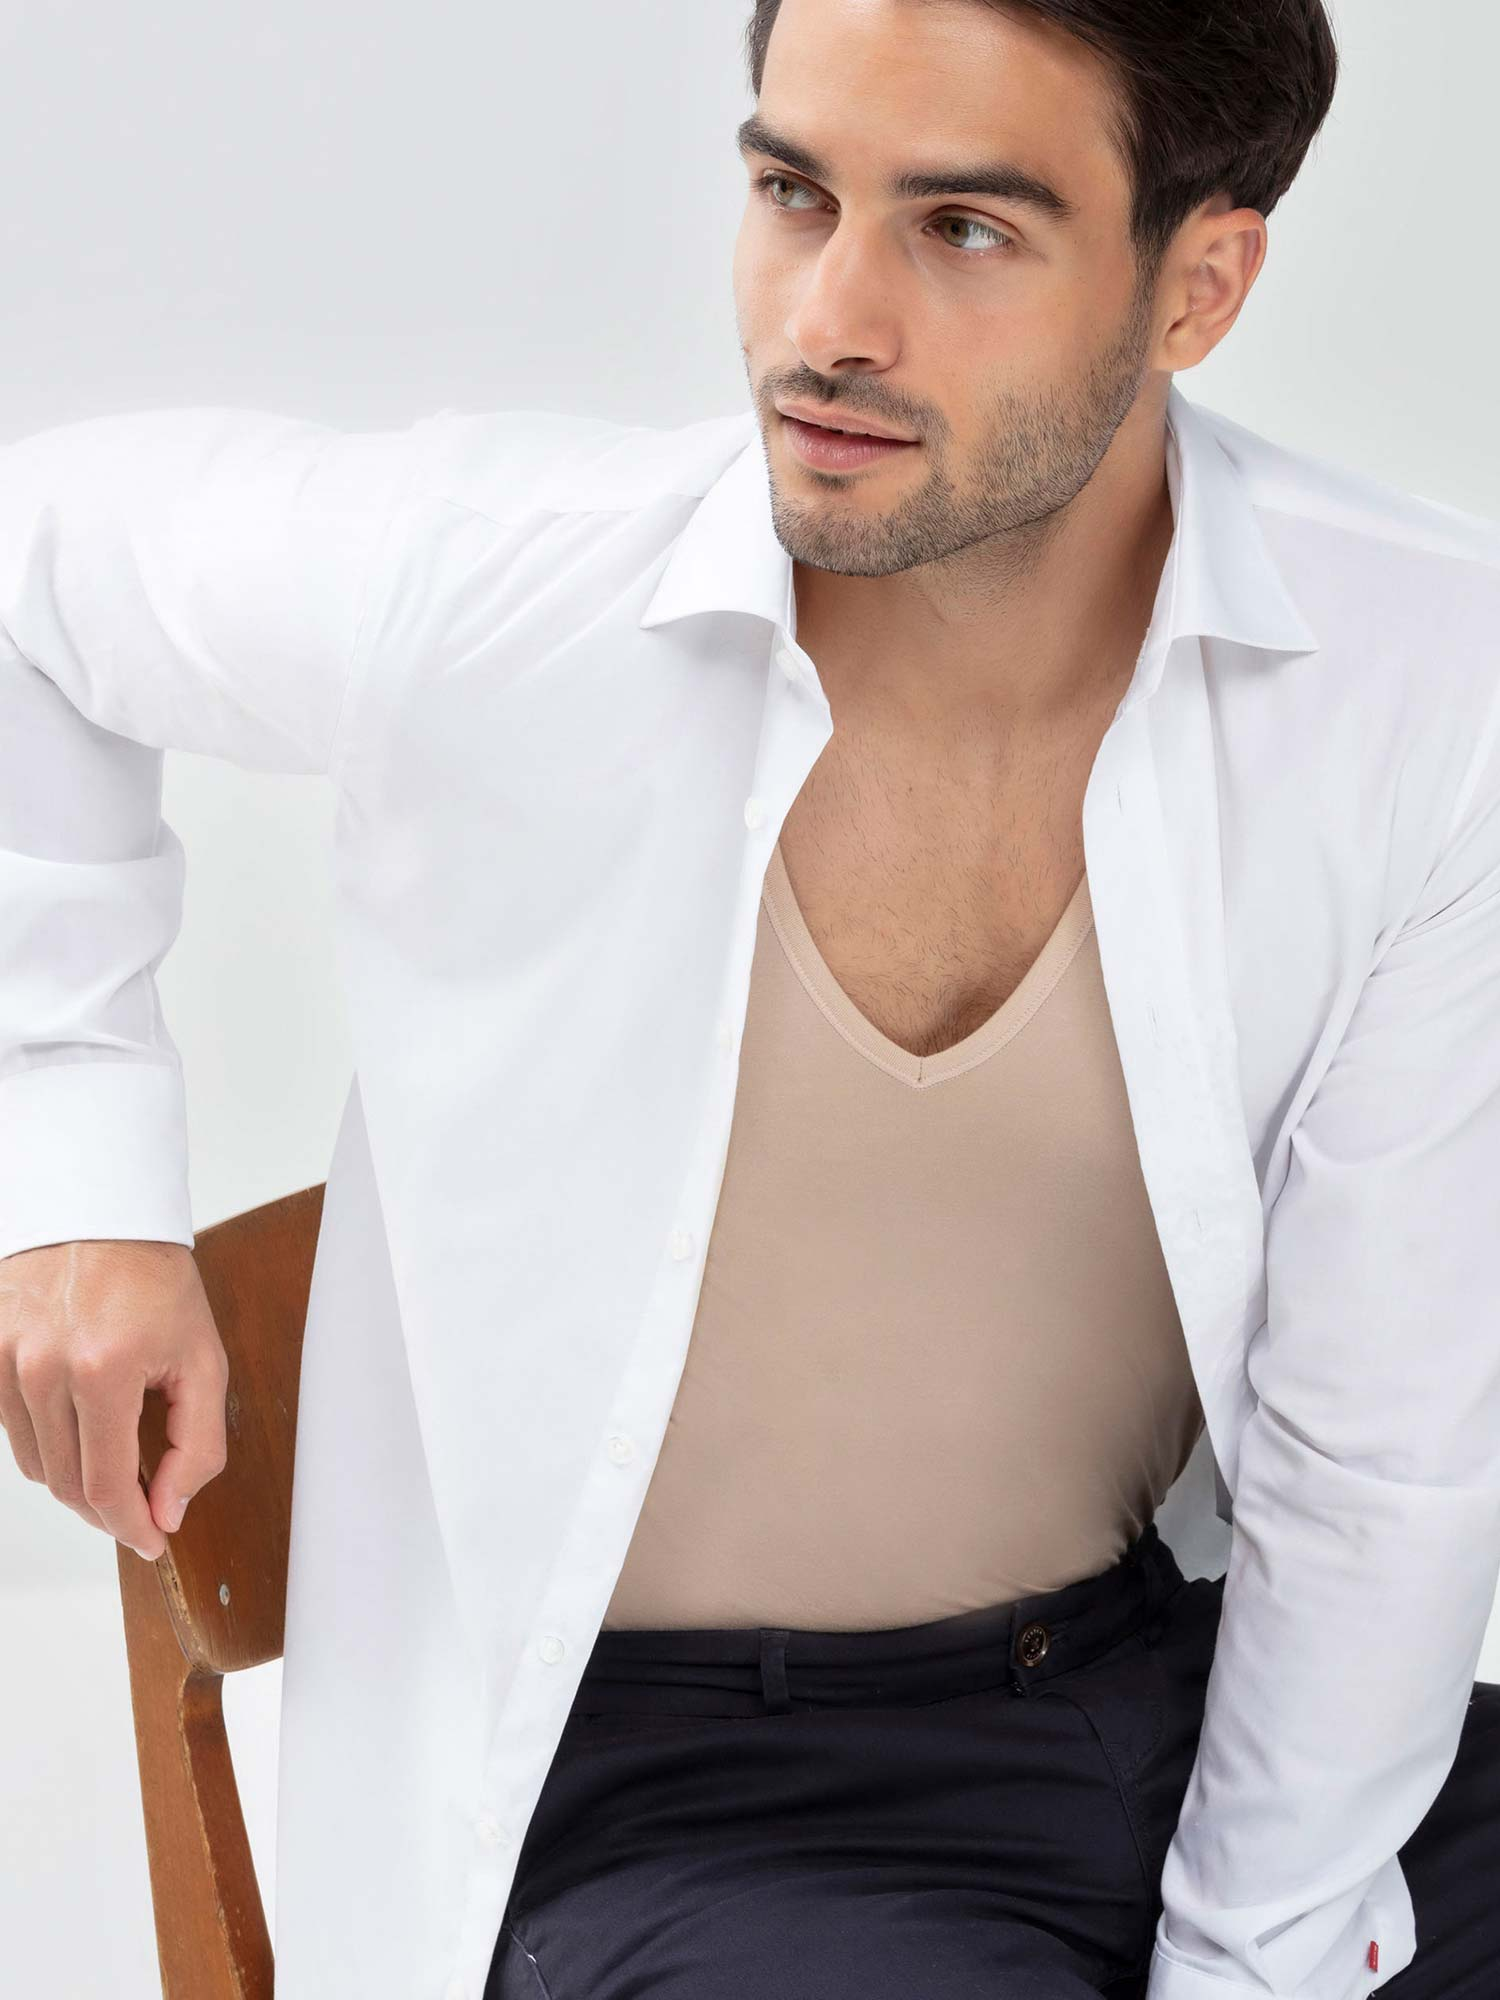 The perfect undershirt for grooms | mey®